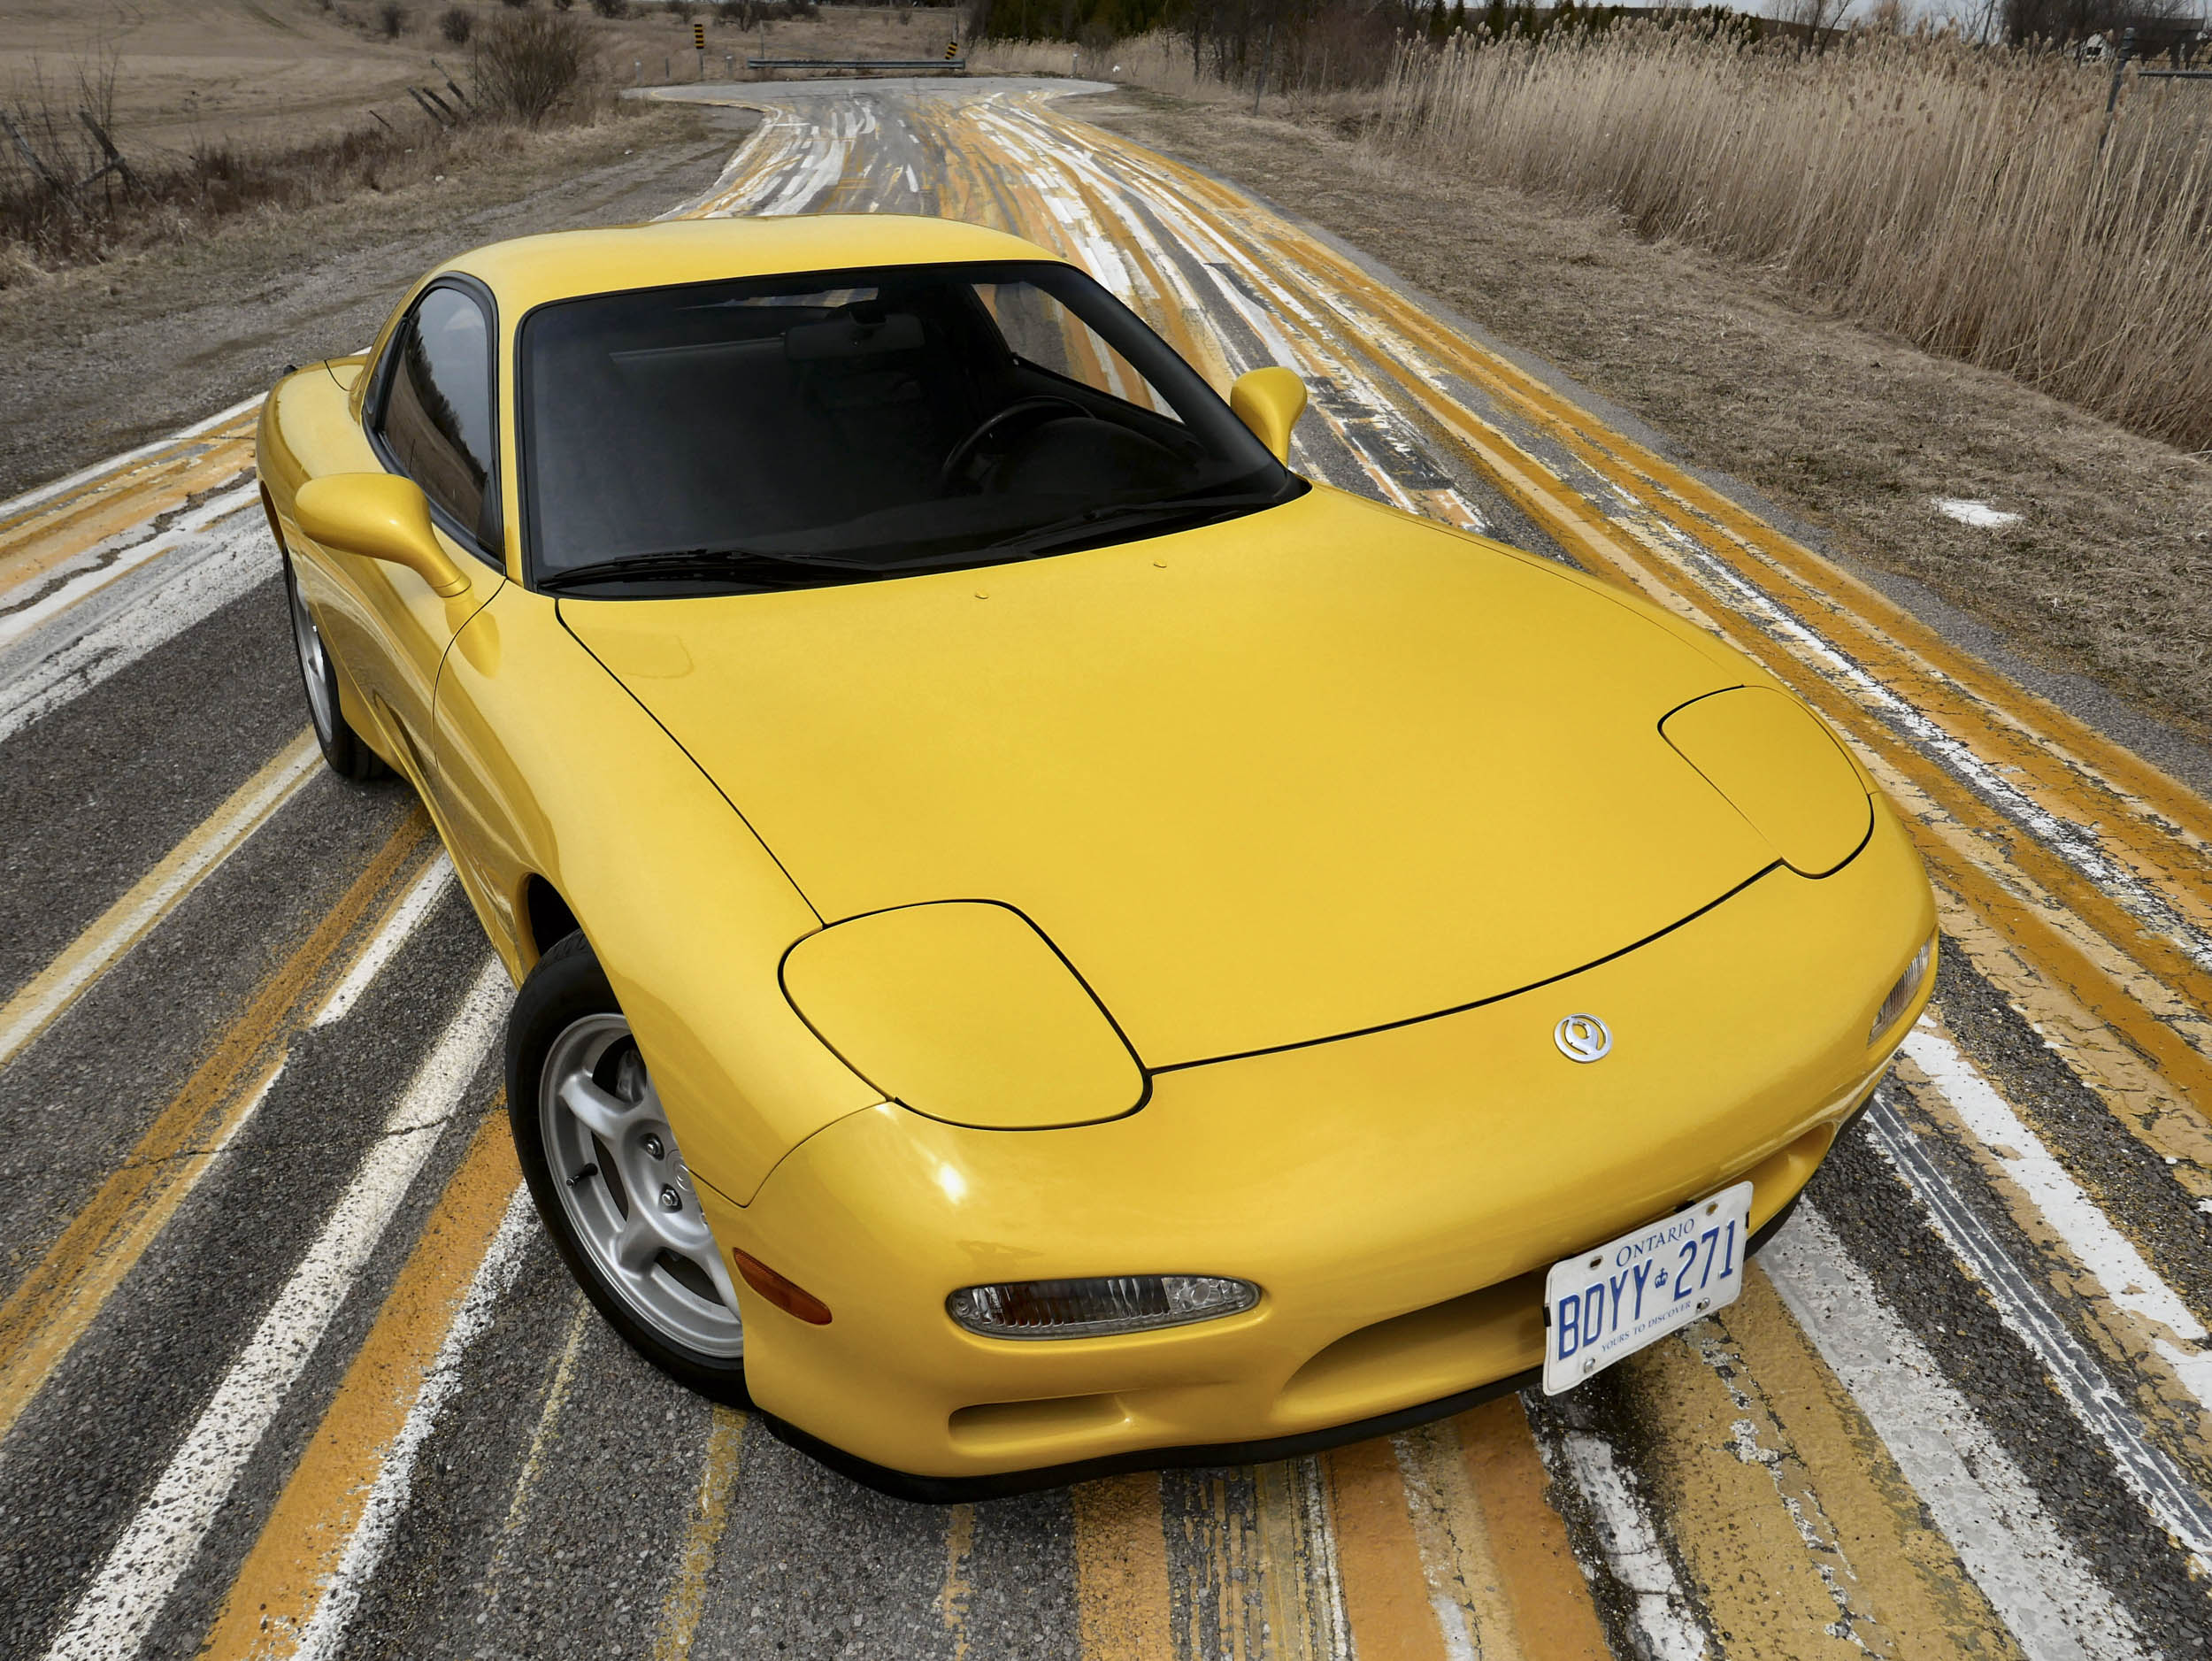 Retro Rewind: Driving Mazda's RX-7 FD rotary wunderkind thumbnail